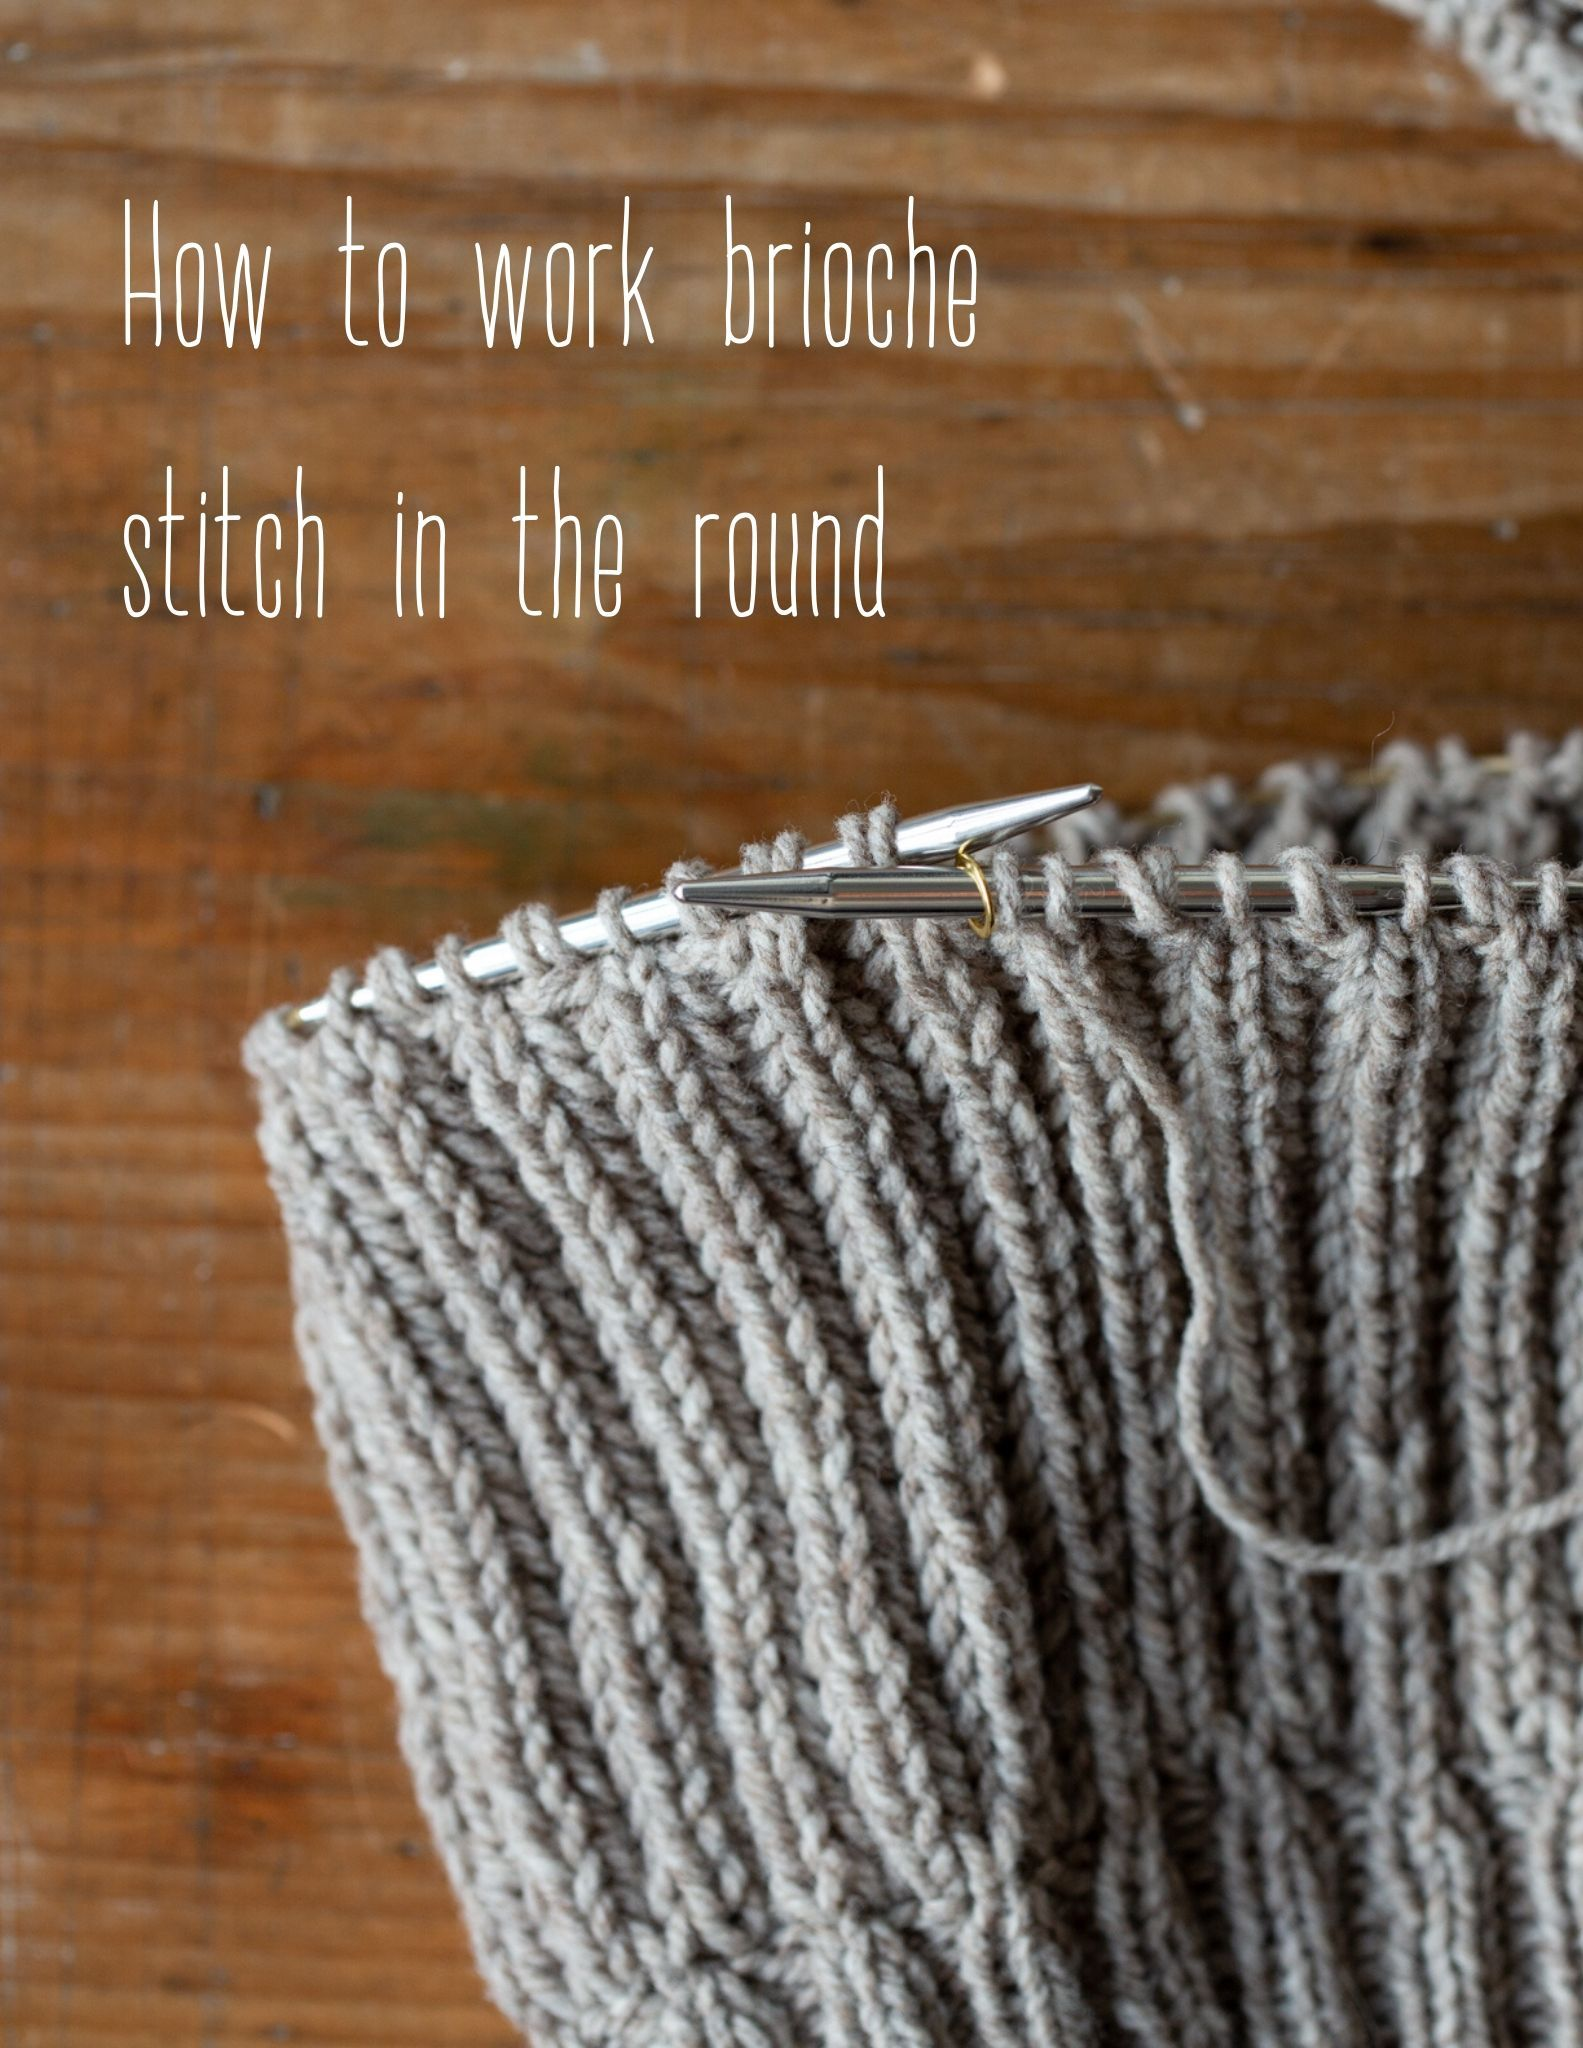 How to work Brioche Stitch in the round